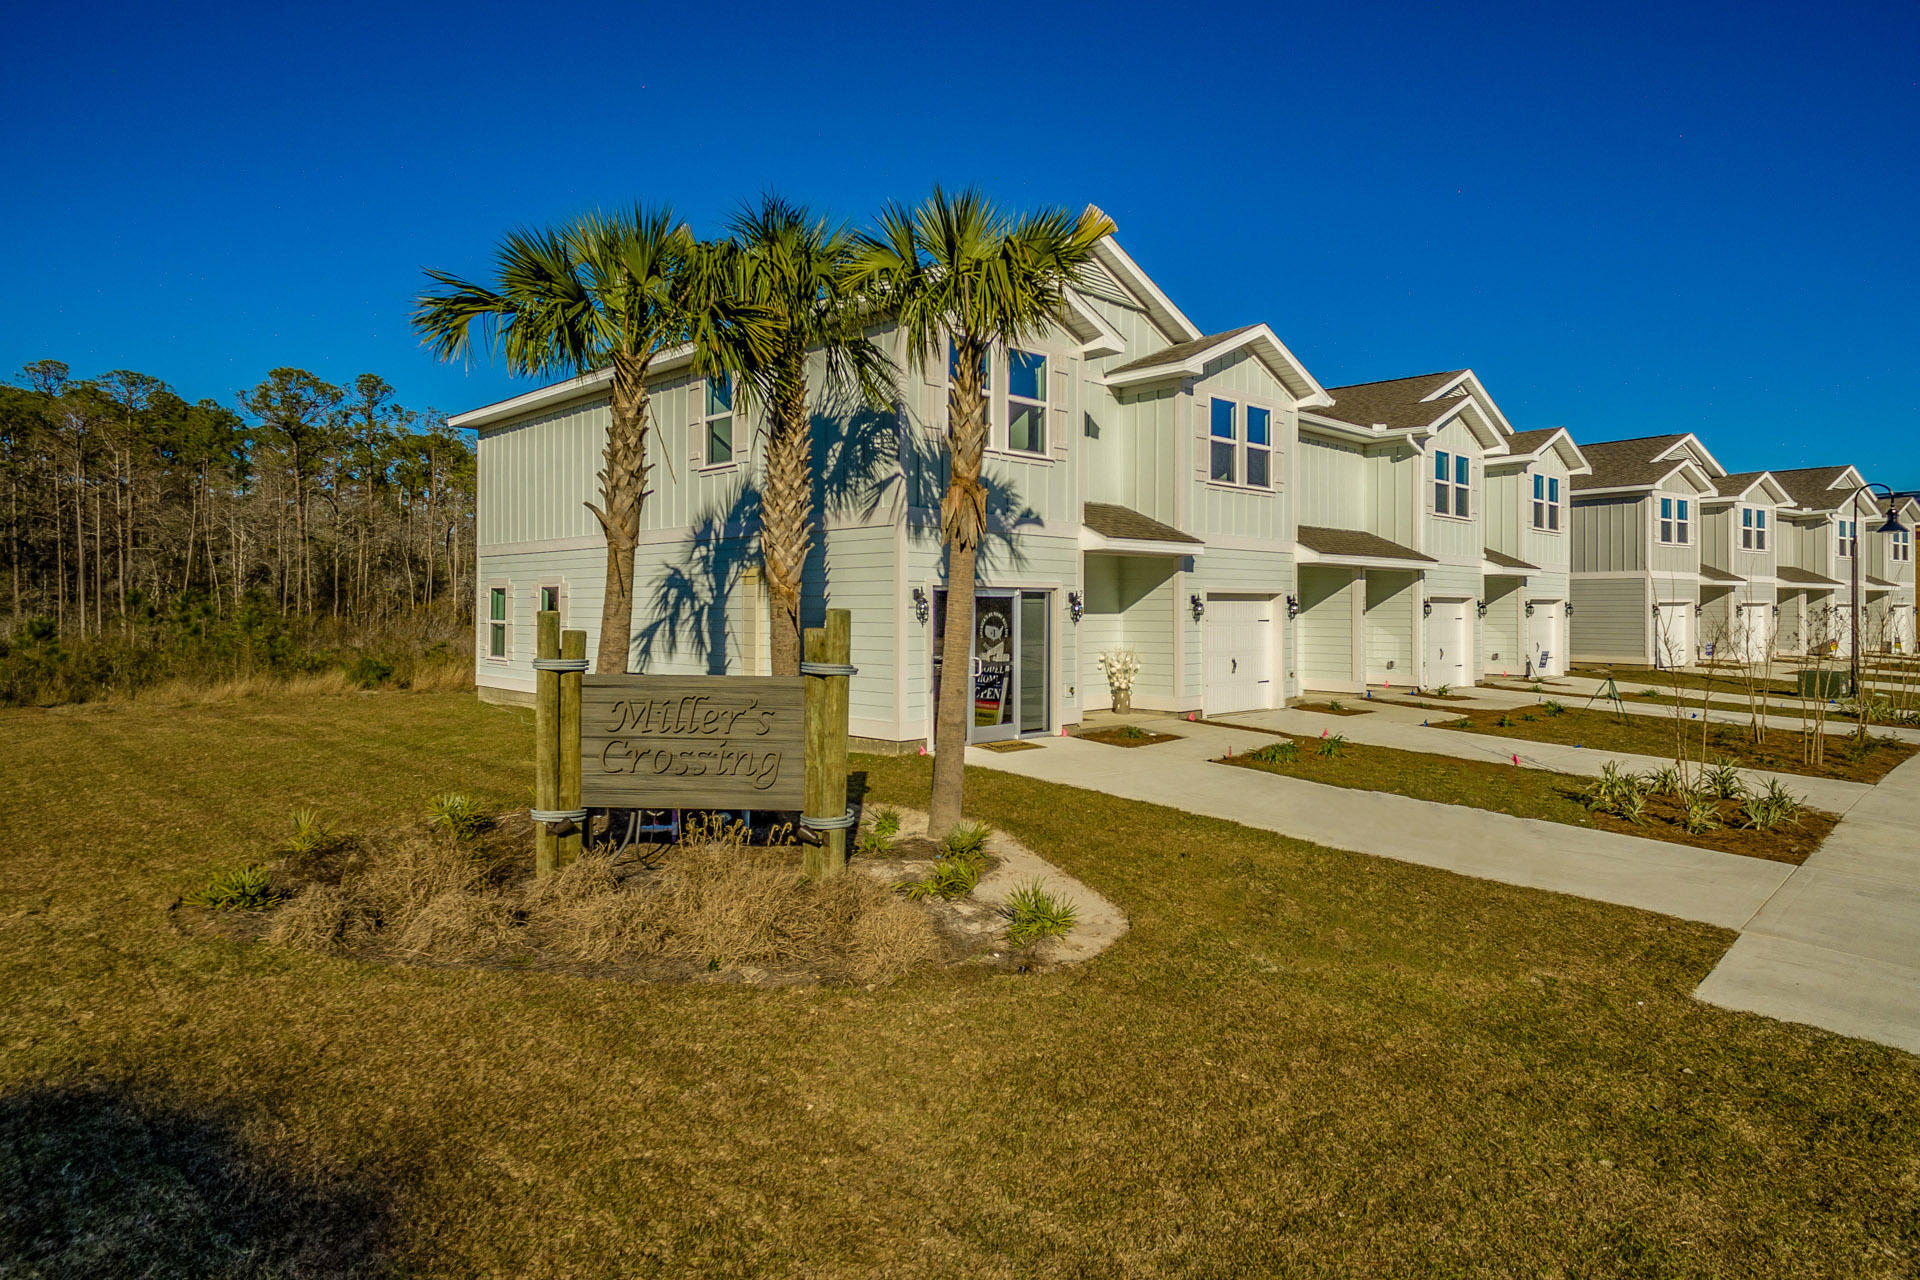 Miller's Crossing is Under Construction and Selling! Select colors and options now, estimated time of completion July 2019. AMAZING OPPORTUNITY to own new construction with introductory pricing in South Walton. Located just minutes awayfrom famous CO Hwy 30a, some of the country's best beaches, incredible shopping, and world class dining. Miller's Crossing is in a central location to both Destin, andPanama City Beach, allowing you to enjoy the best of both worlds. Walking distance to Alaqua Unleashed Dog park, Padgett Park, nature trails and public library.